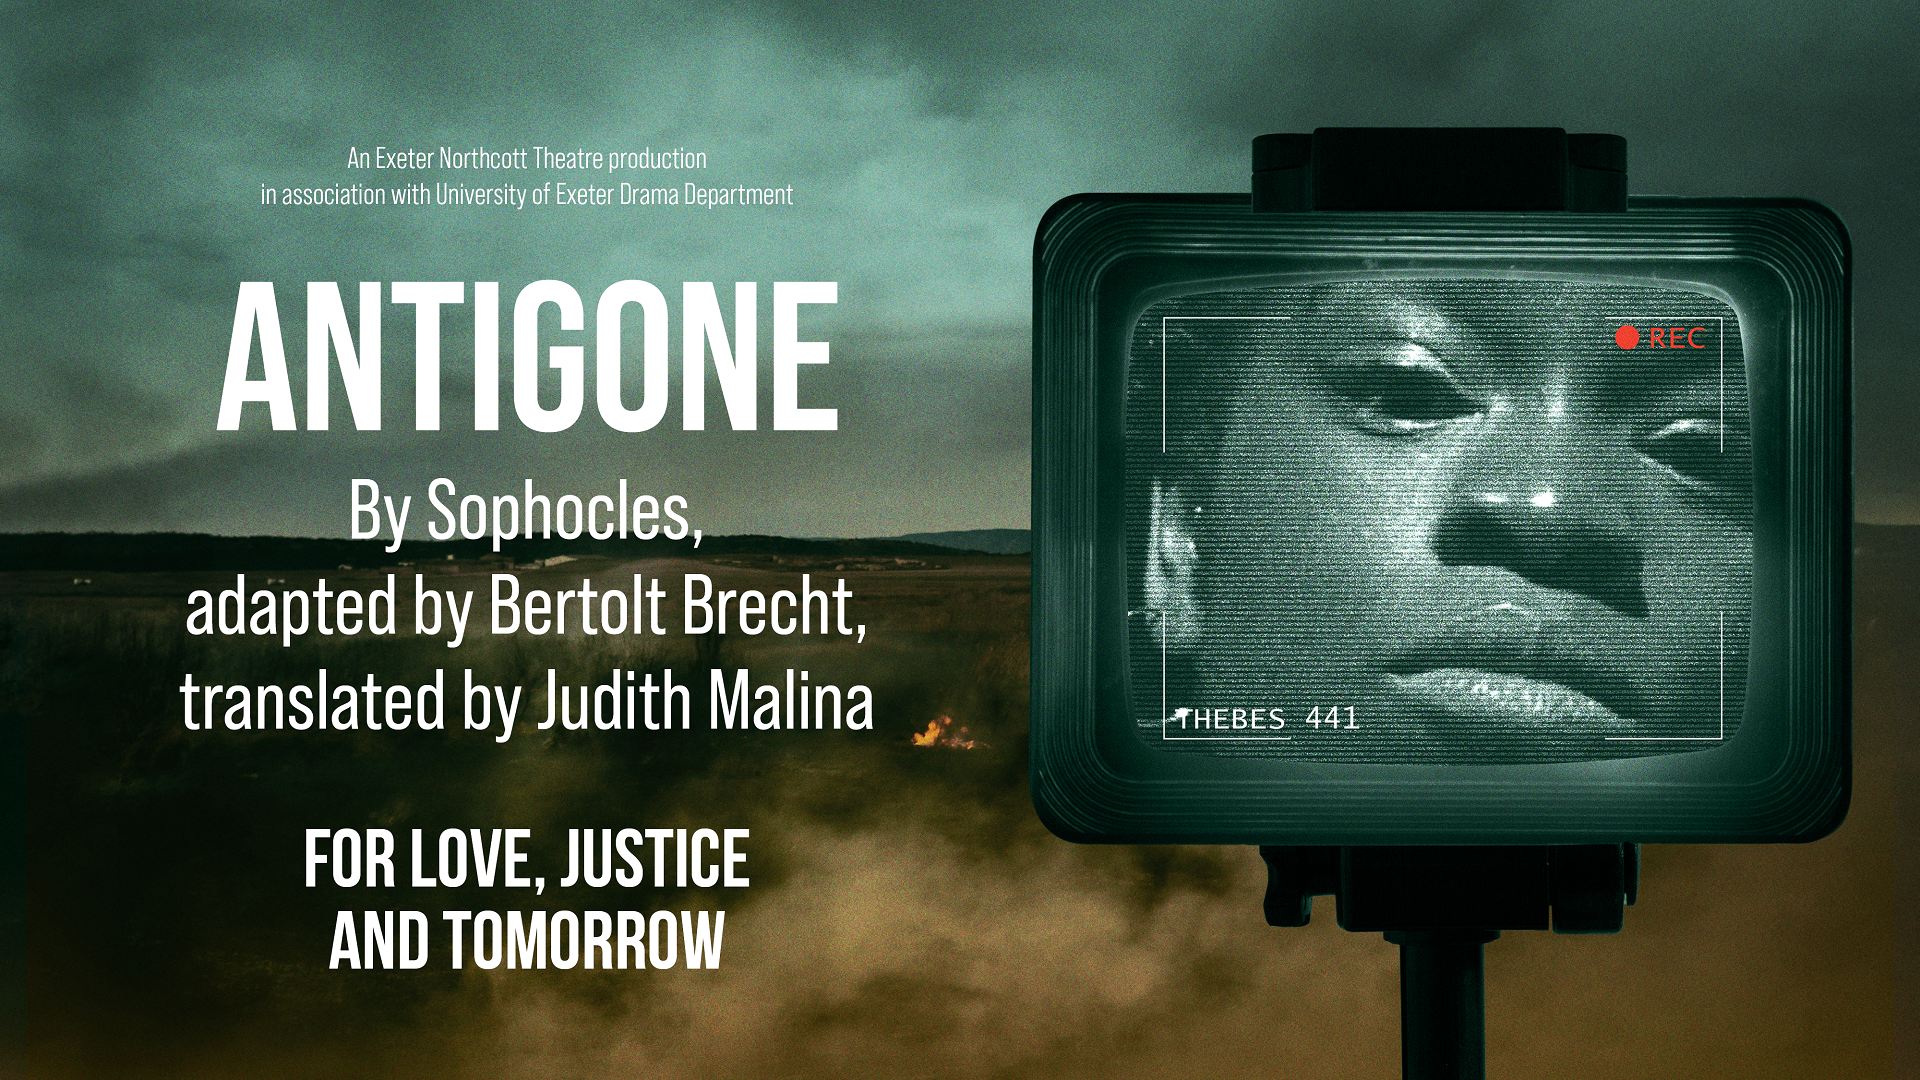 Antigone promotional image - a young woman on a security camera looking in closely and intensely